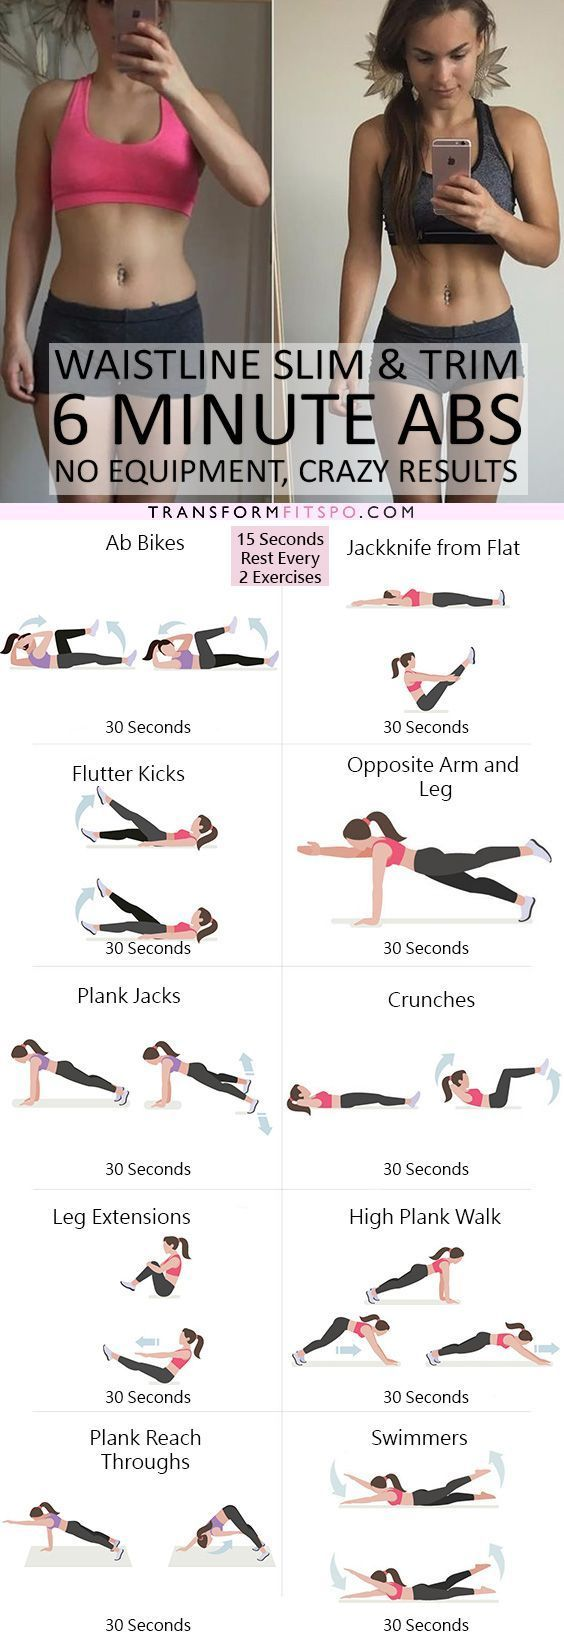 The Ultimate 6 Minute Abs Workout to Trim and Slim